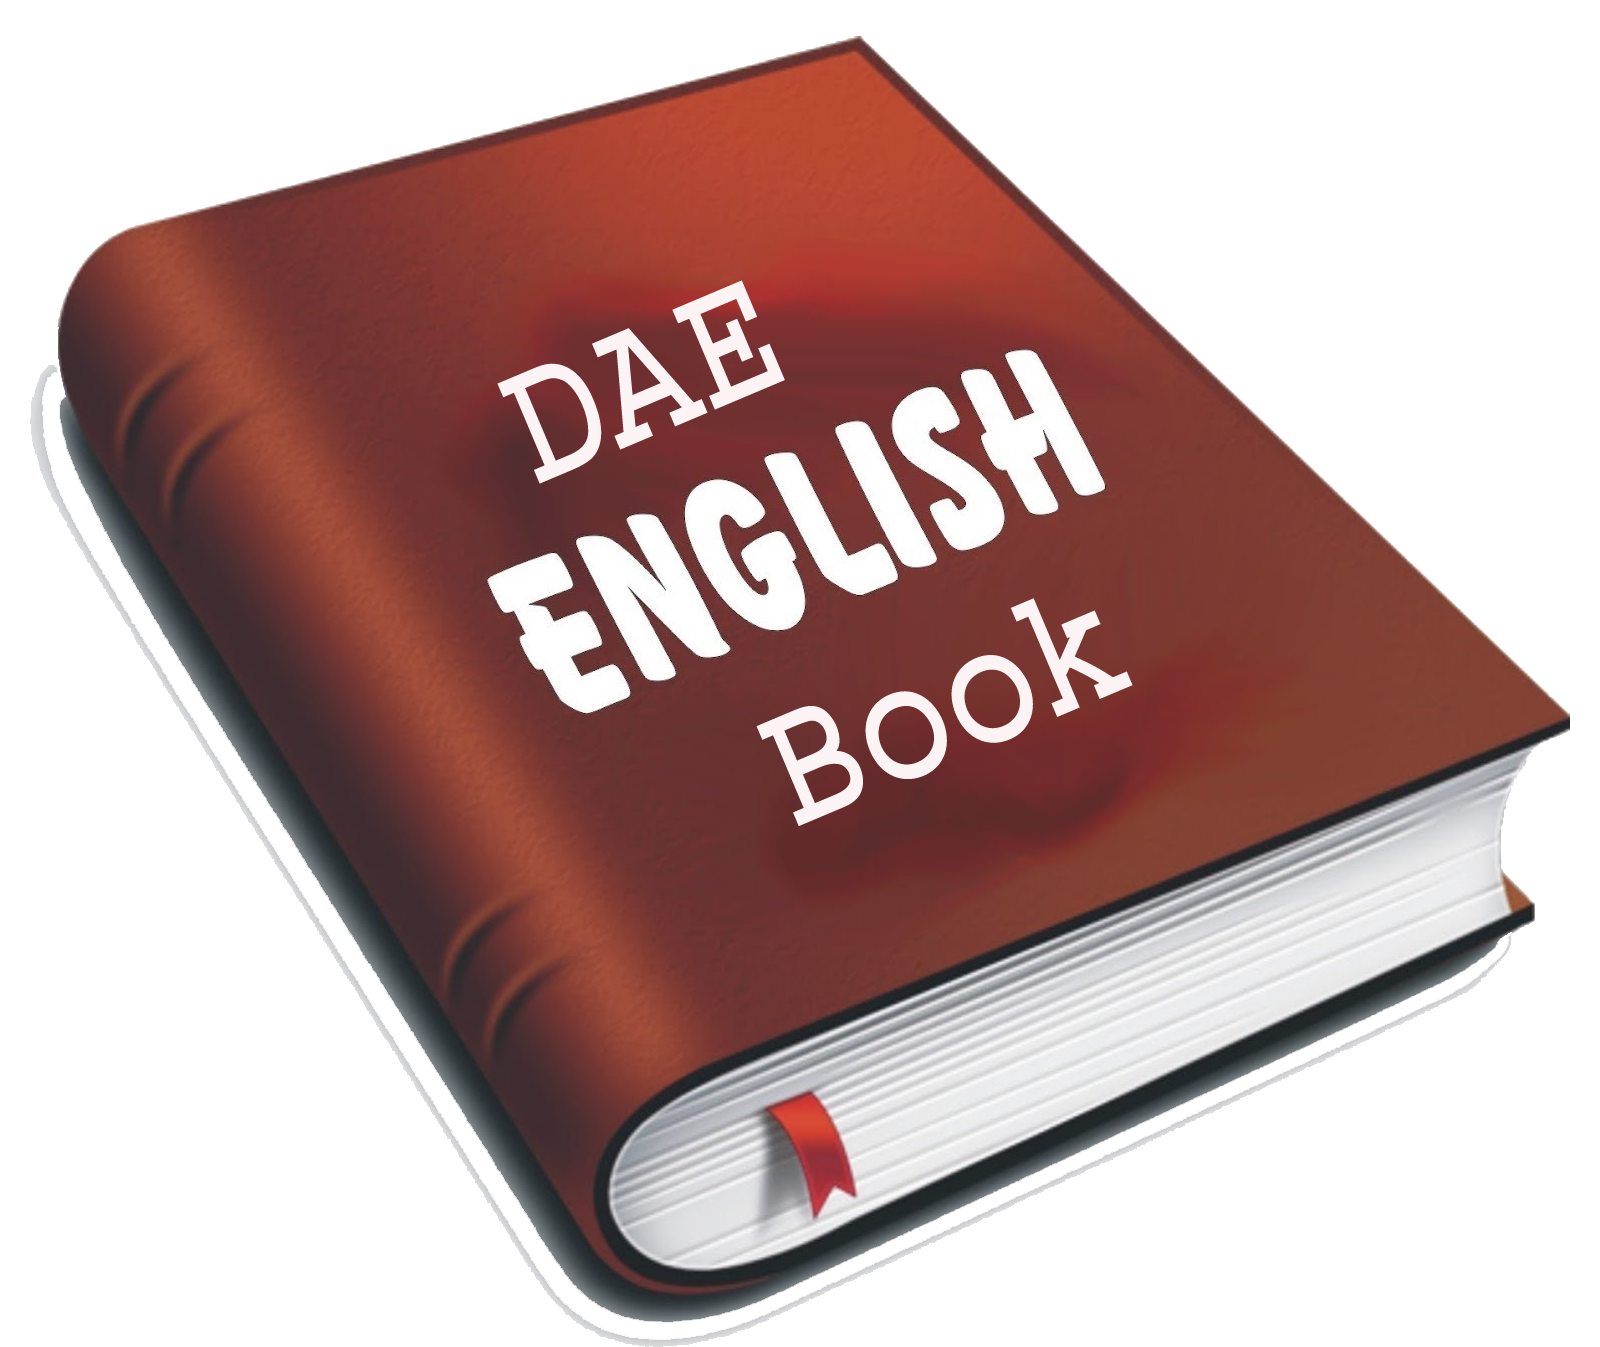 DOWNLOAD FREE DAE ENGLISH 112 BOOK PDF | DAE CIVIL